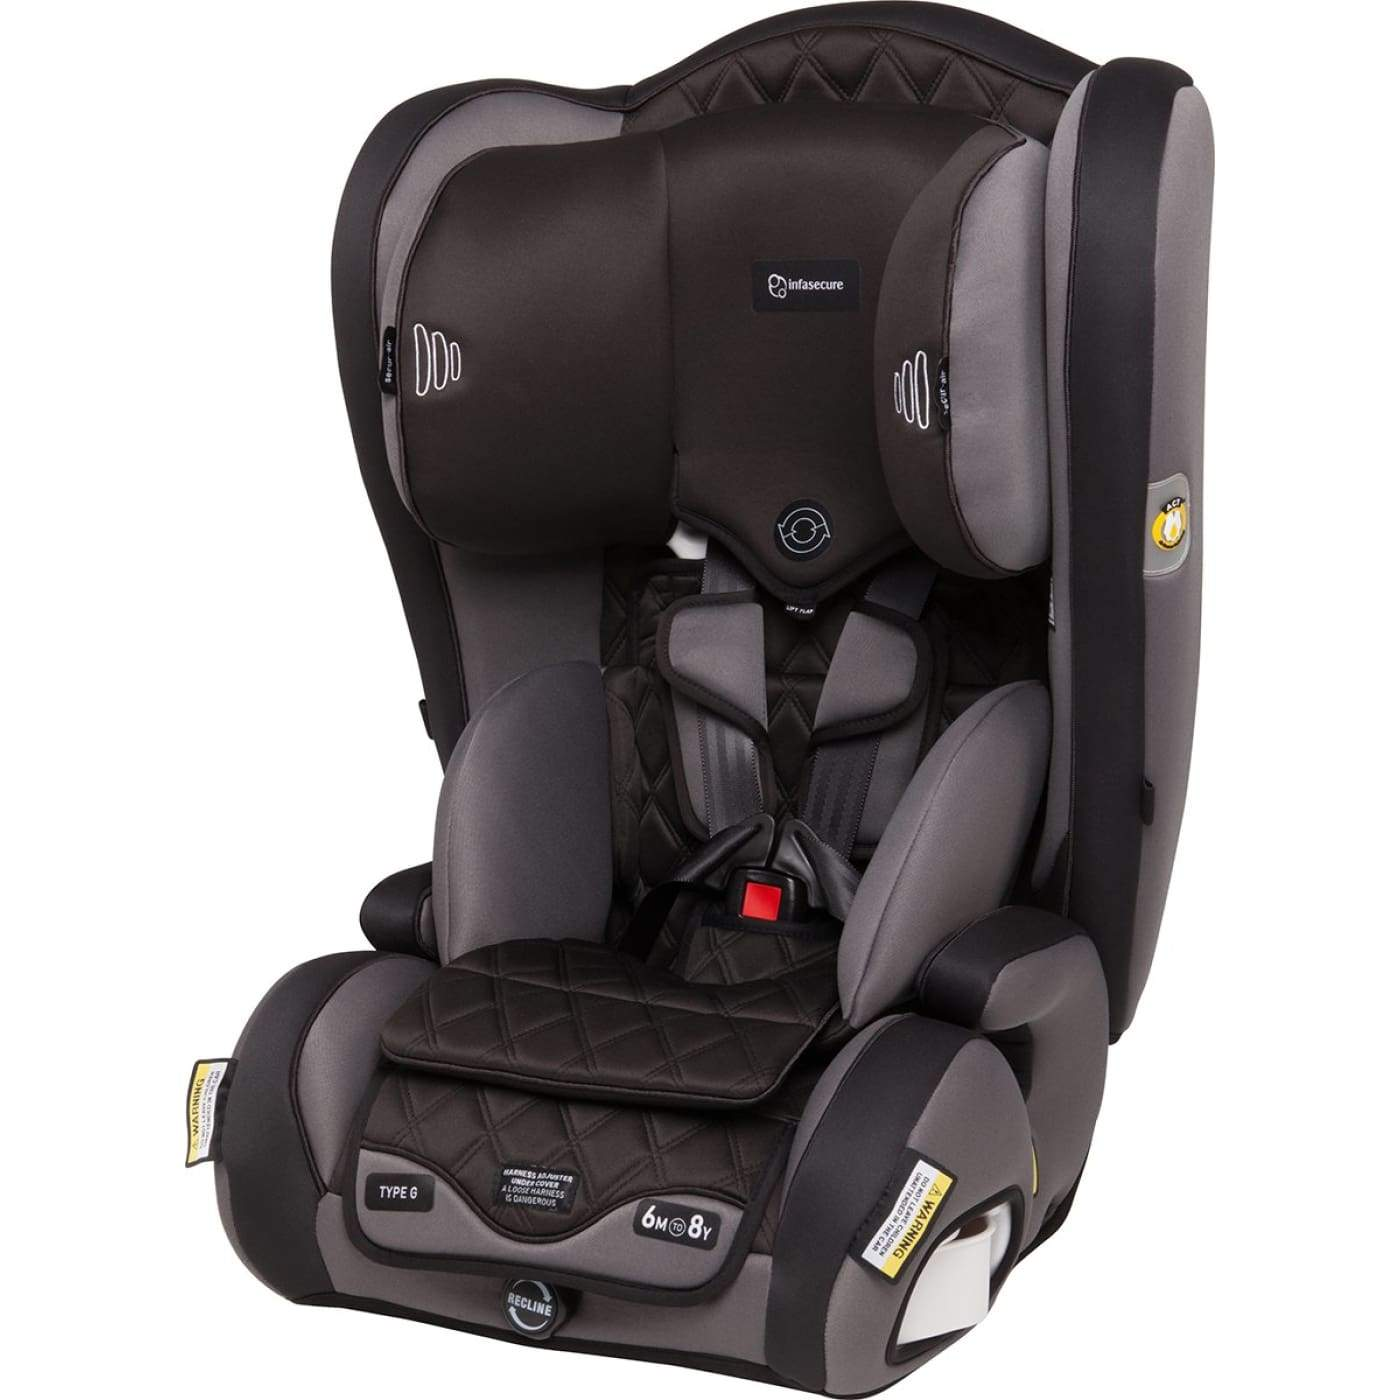 InfaSecure Accomplish Premium Harnessed Booster 6M-8YR - Night - CAR SEATS - HARNESSED BOOSTERS (6M-8YR)